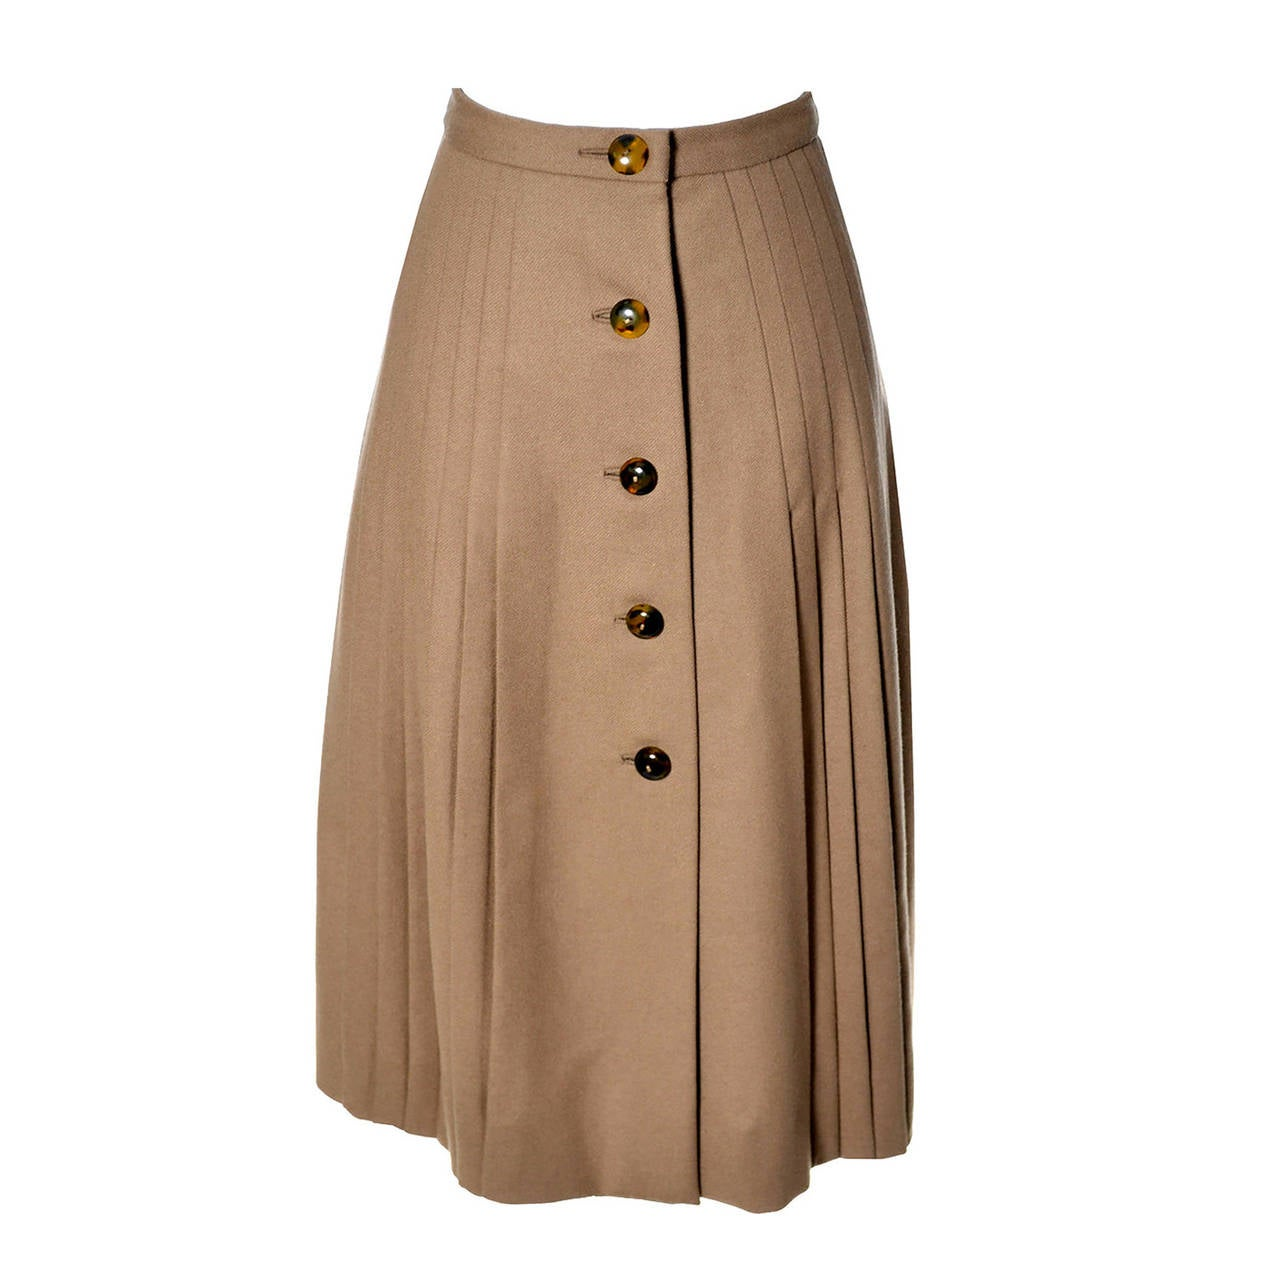 Valentino Vintage Skirt Older Label Boutique Camel Wool 1960s For Sale